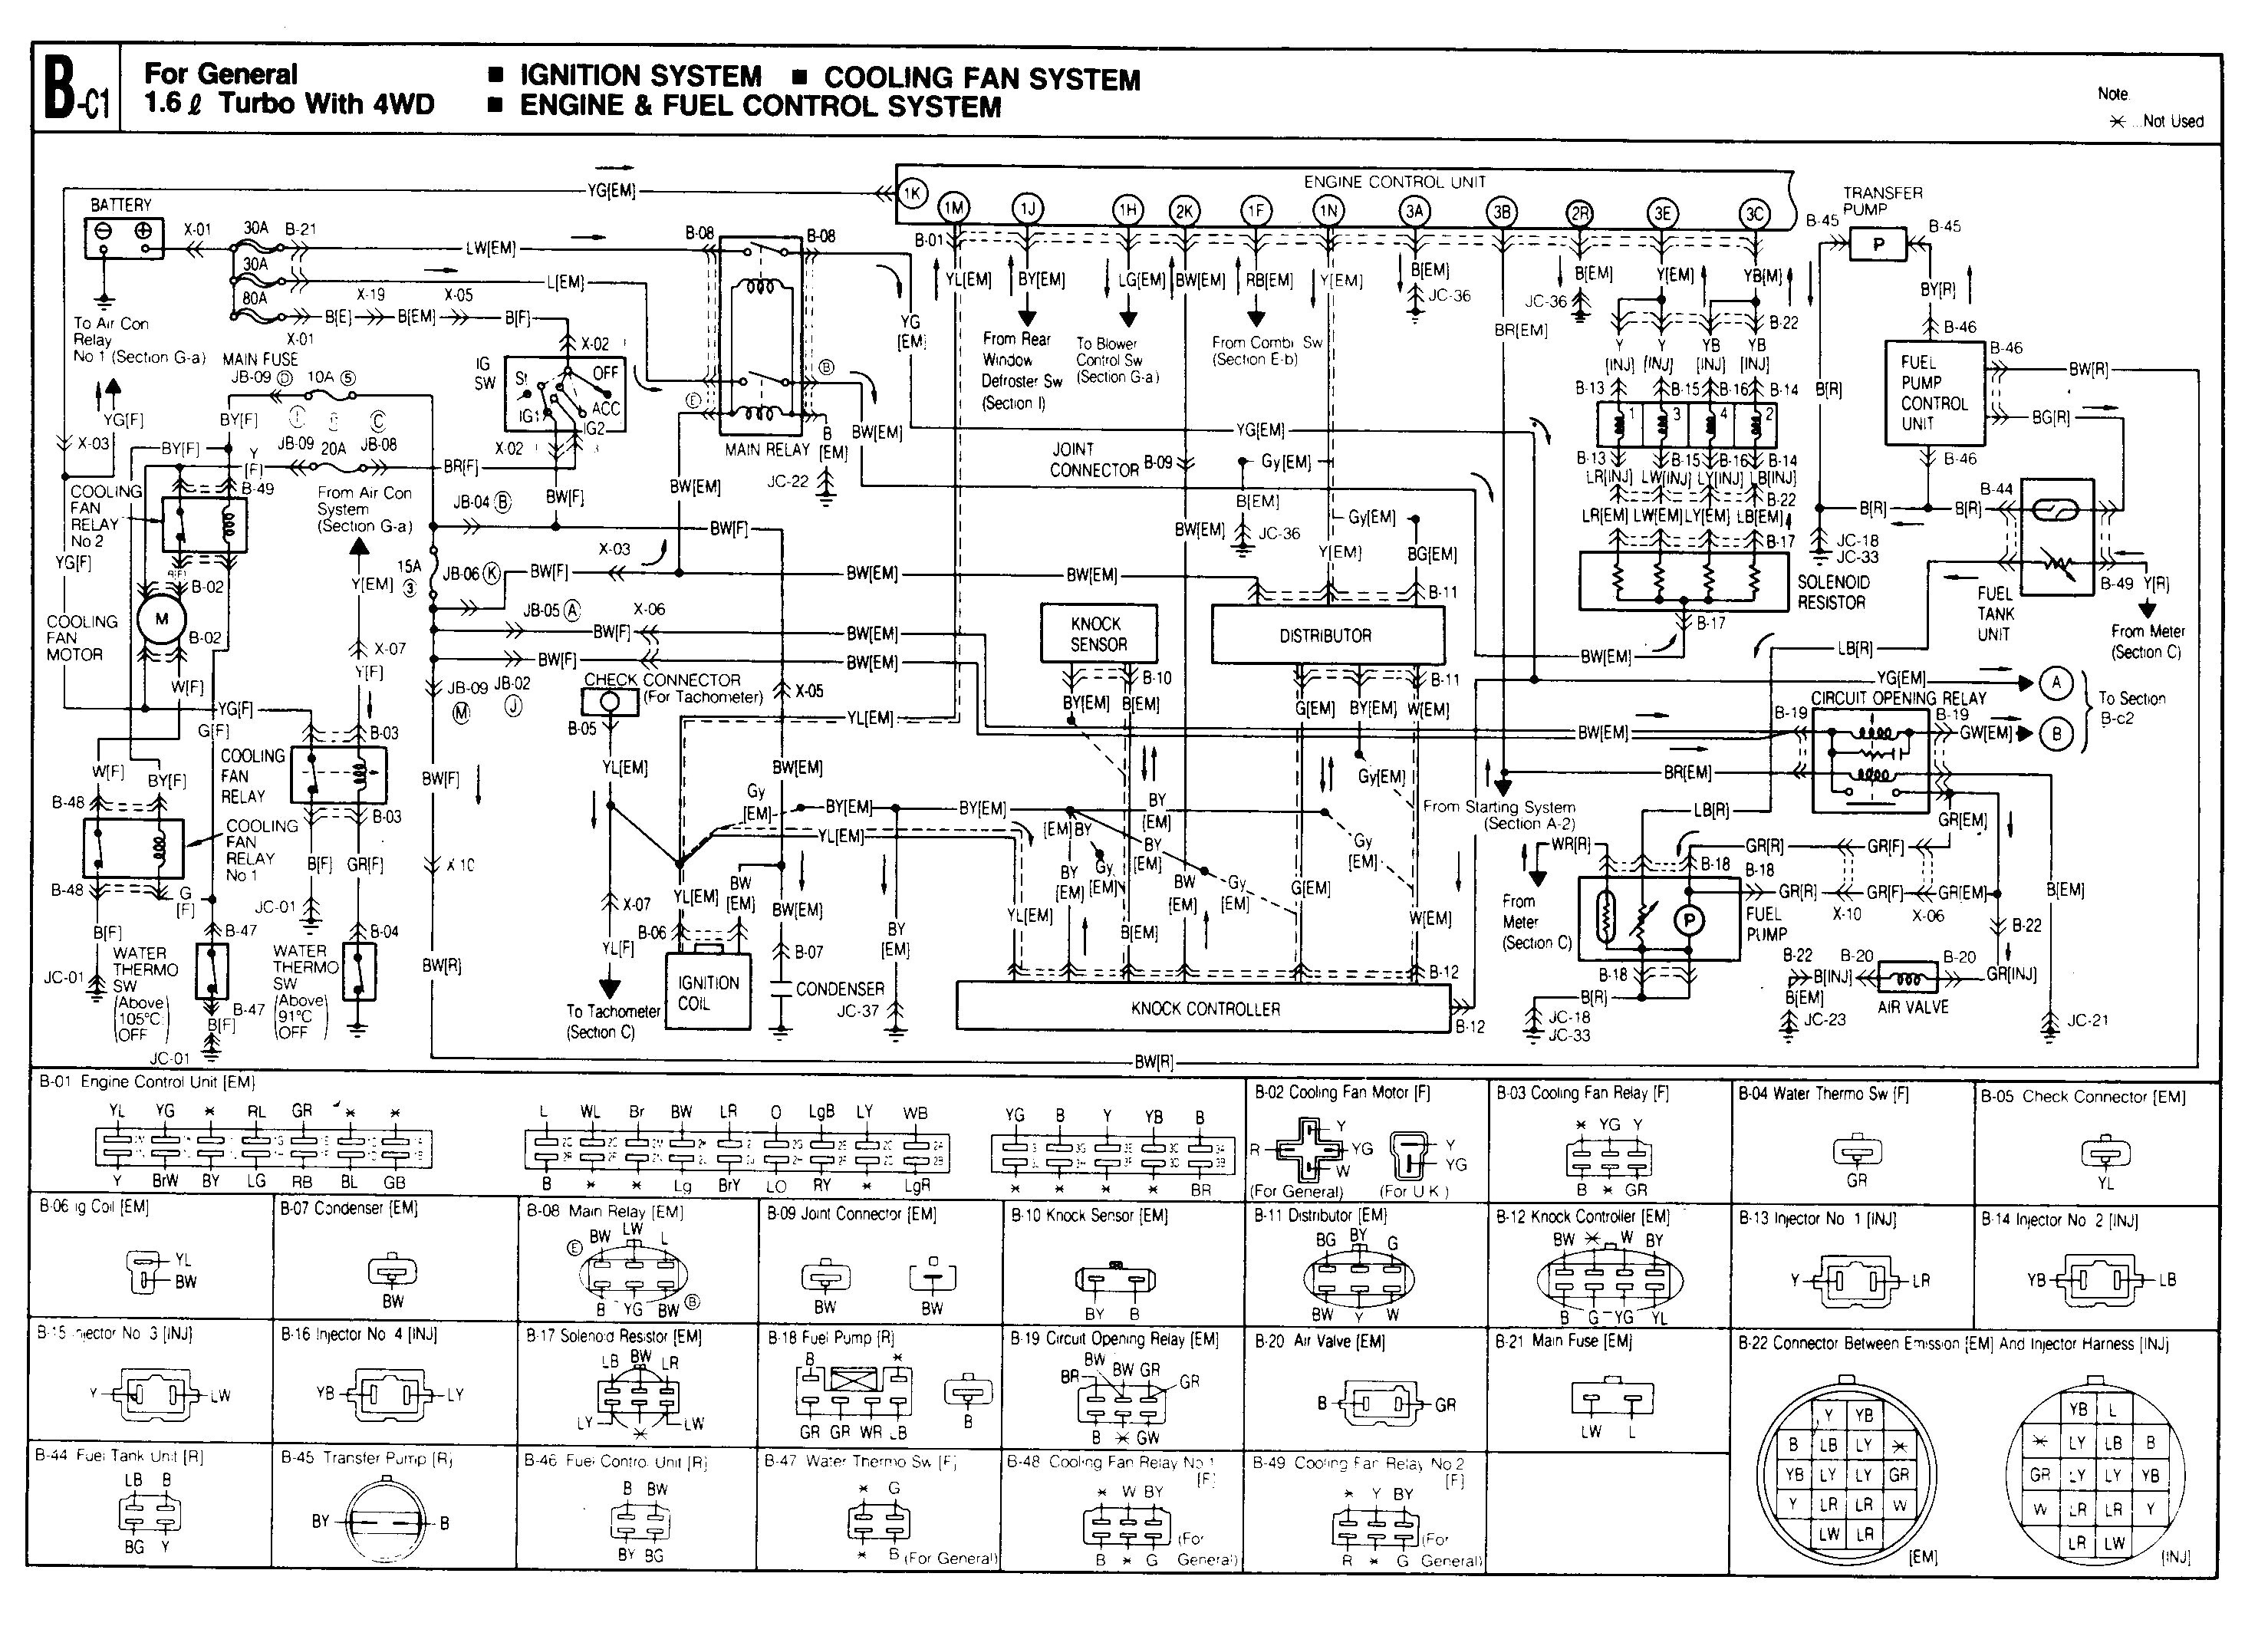 2003 mazda 6 engine diagram diagram mazda 6 engine diagram